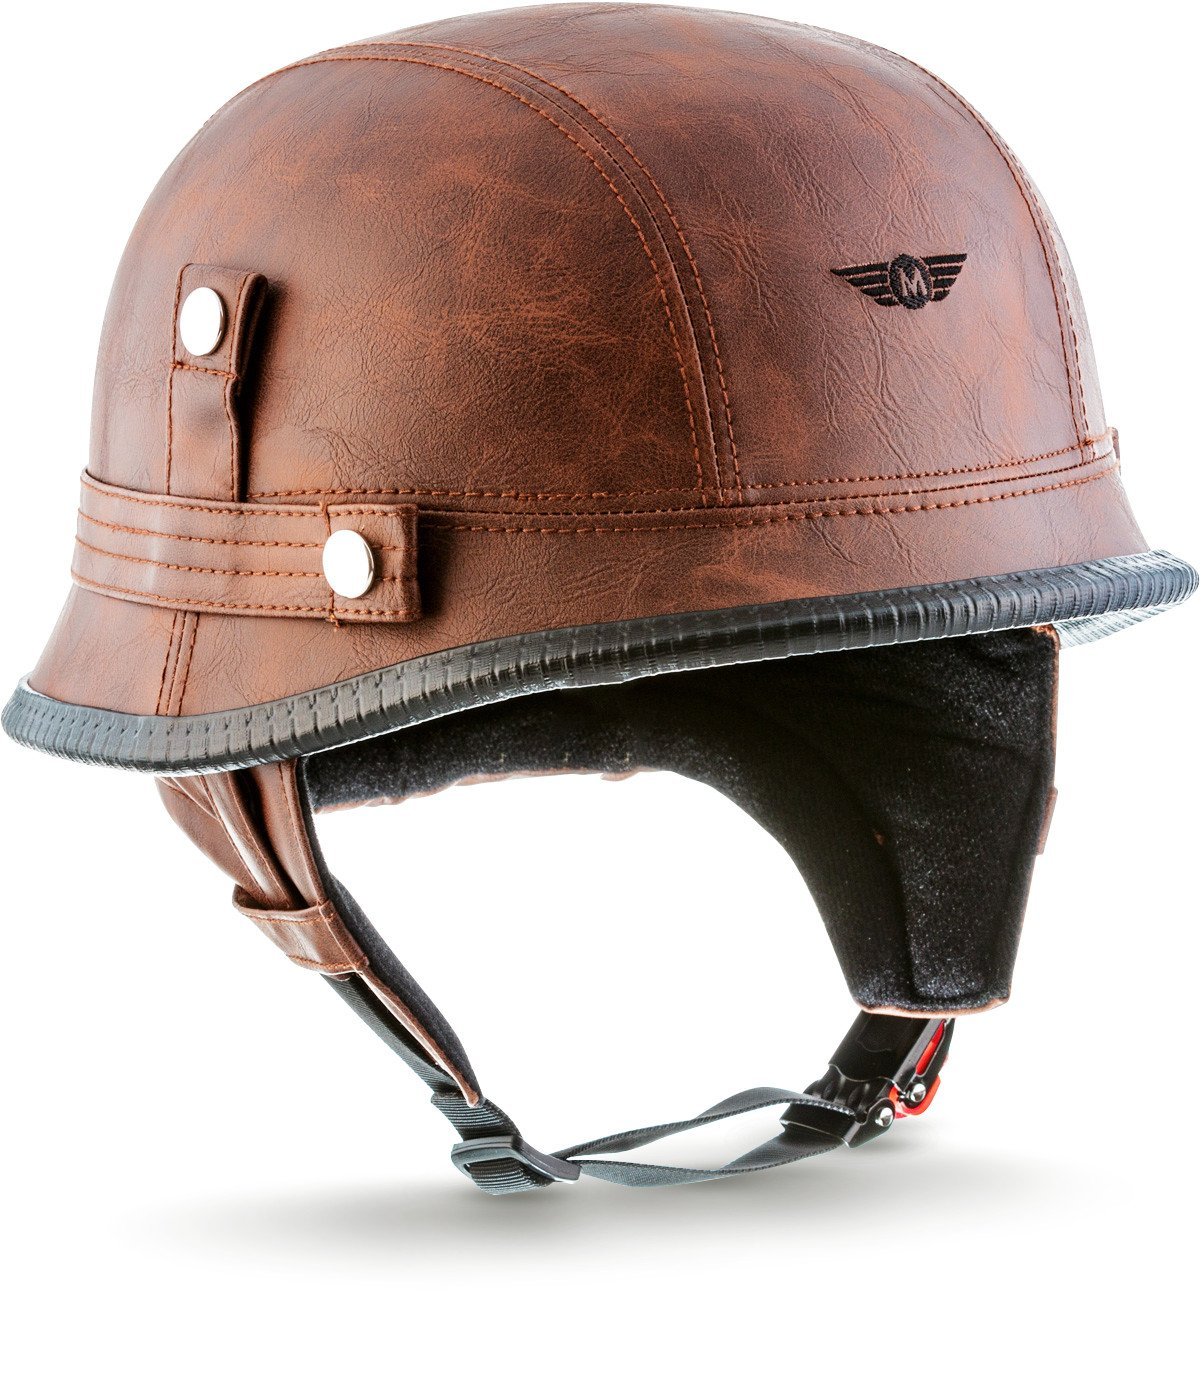 MOTO · D33'Leather Brown' (Brown) · Jet-Helm Braincap Bobber Halbschalen · Roller Mofa Retro Scooter-Helm Motorrad-Helm Chopper · Click-n-SecureTM Clip · Tragetasche · M (57-58cm) MOTO Helmets D33_LEATHER-BROWN_M